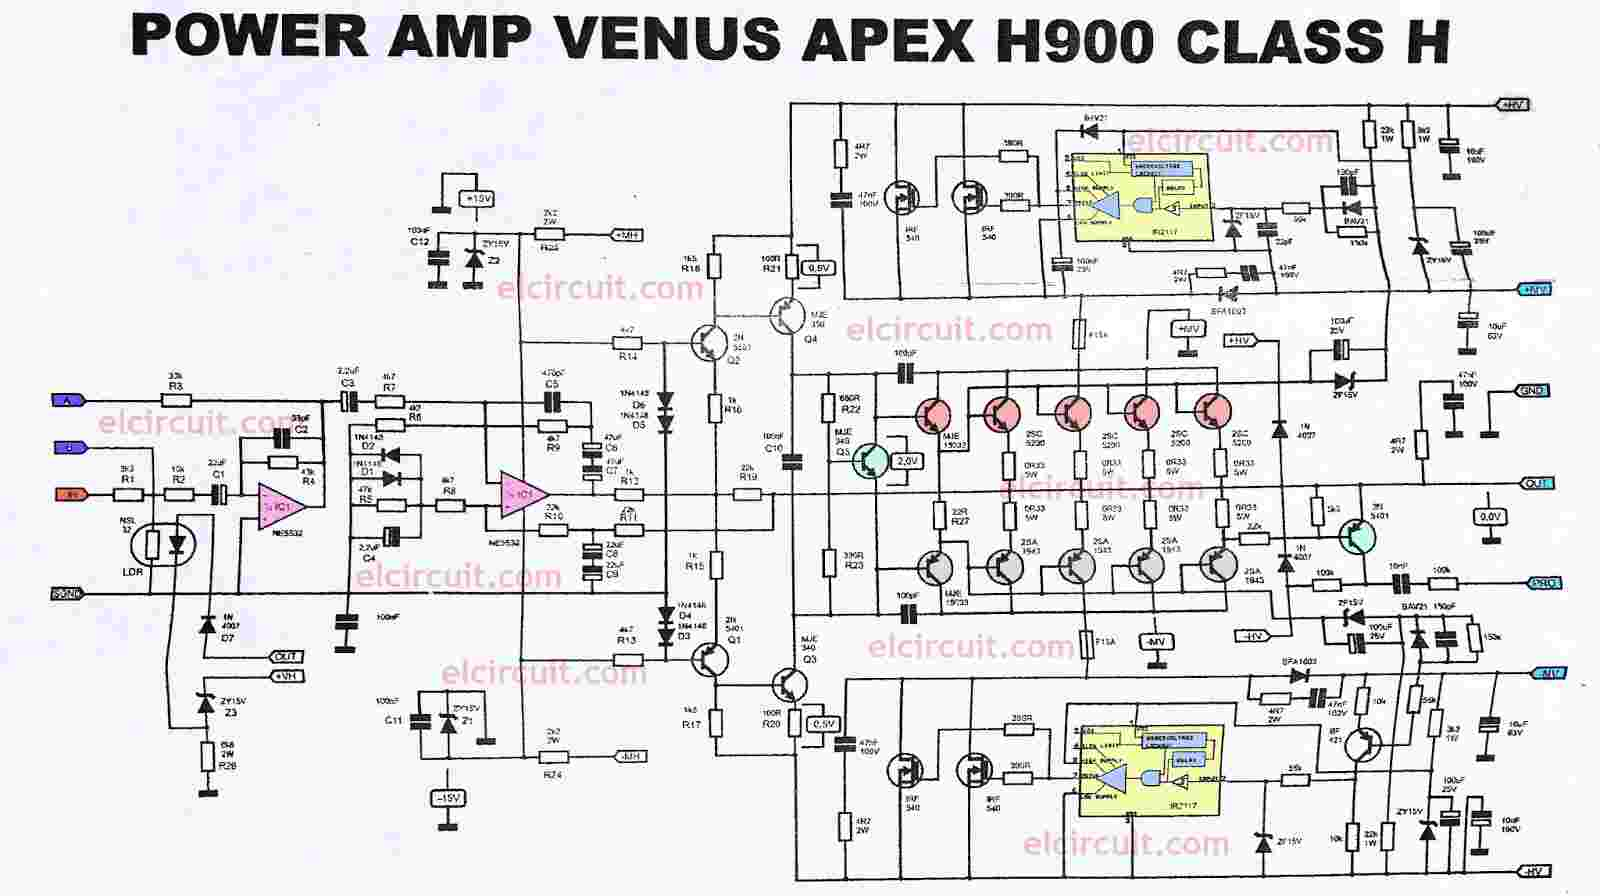 2000 Watts Power Amplifier Schematic Diagram Wiring 1970 Chevelle Ss Apex H900 - Efficient, Flat And Powerful Electronic Circuit